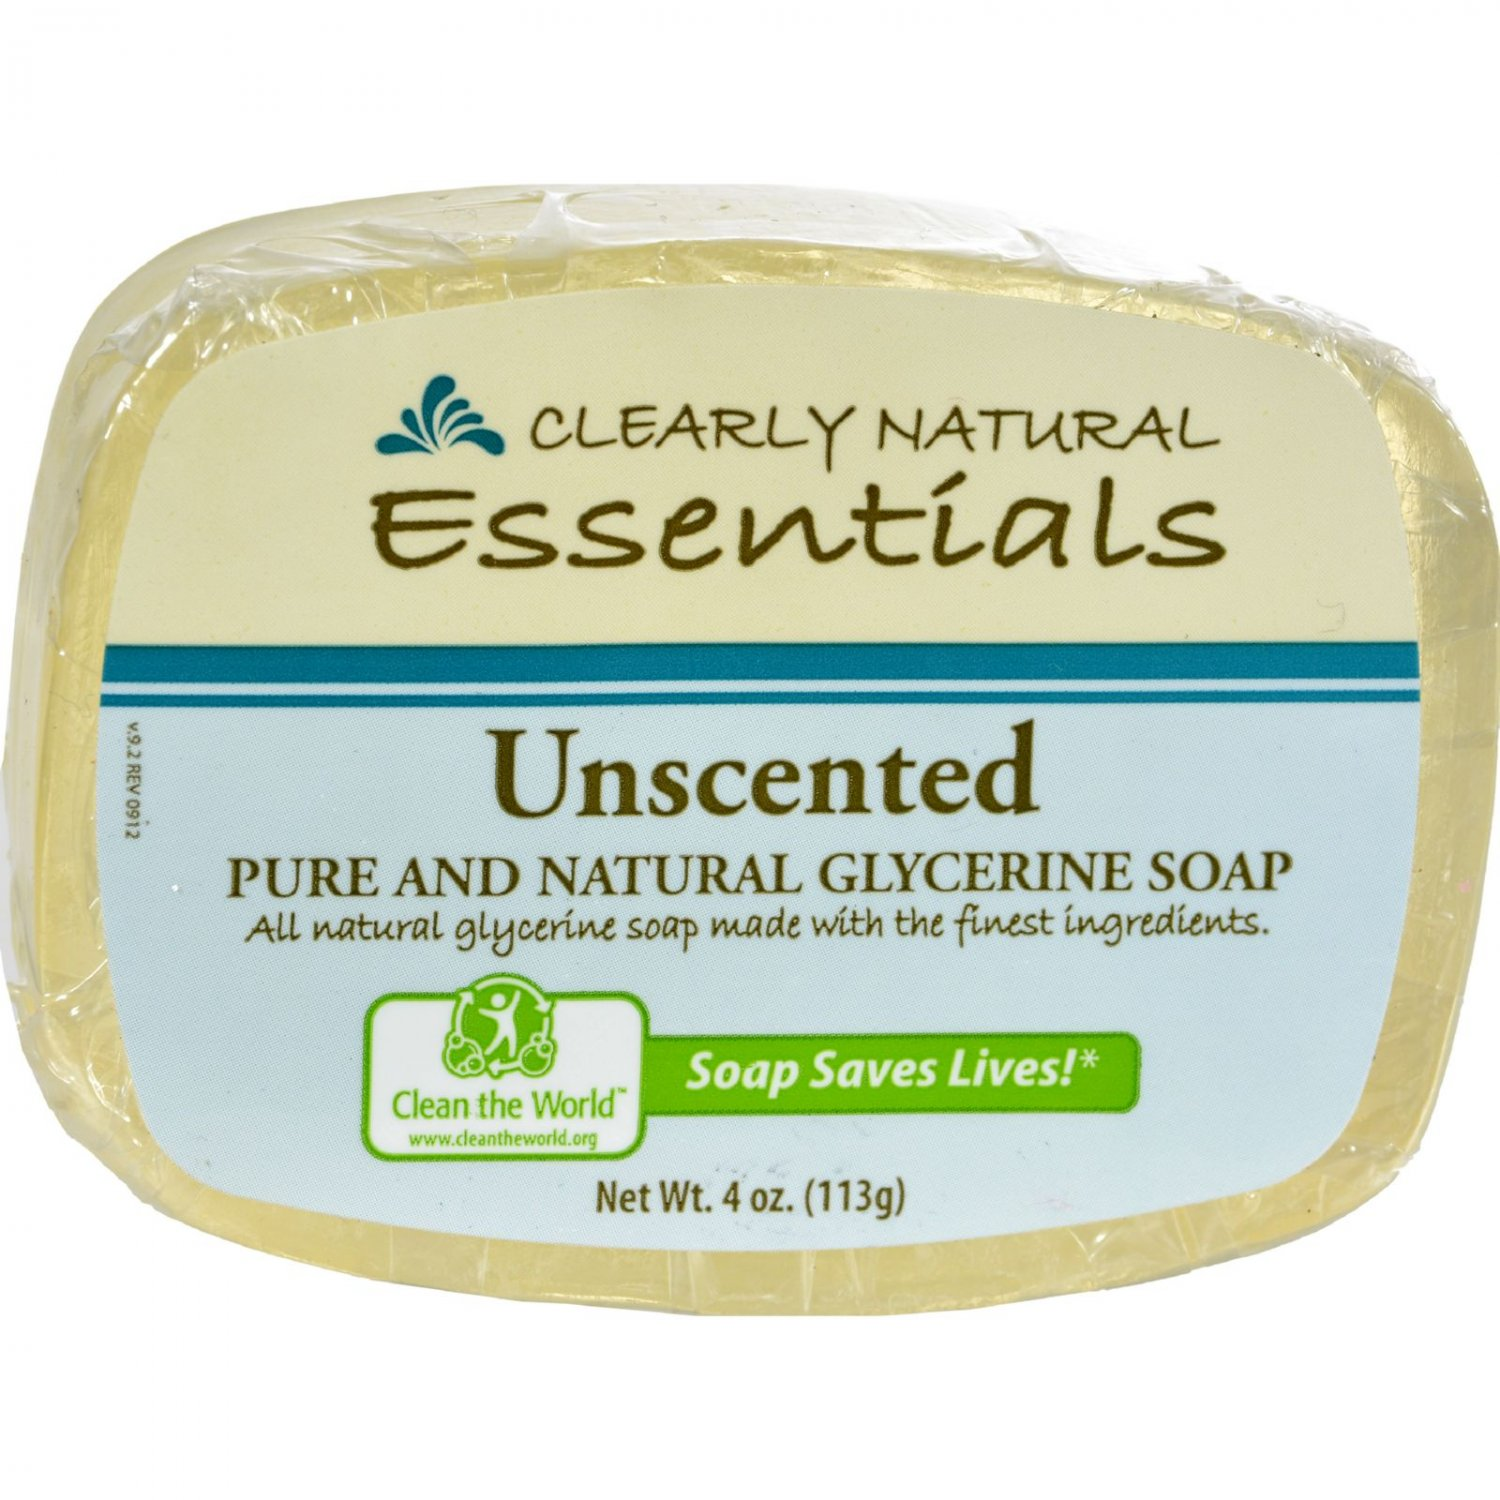 Clearly Natural Glycerine Bar Soap Unscented - 4 oz